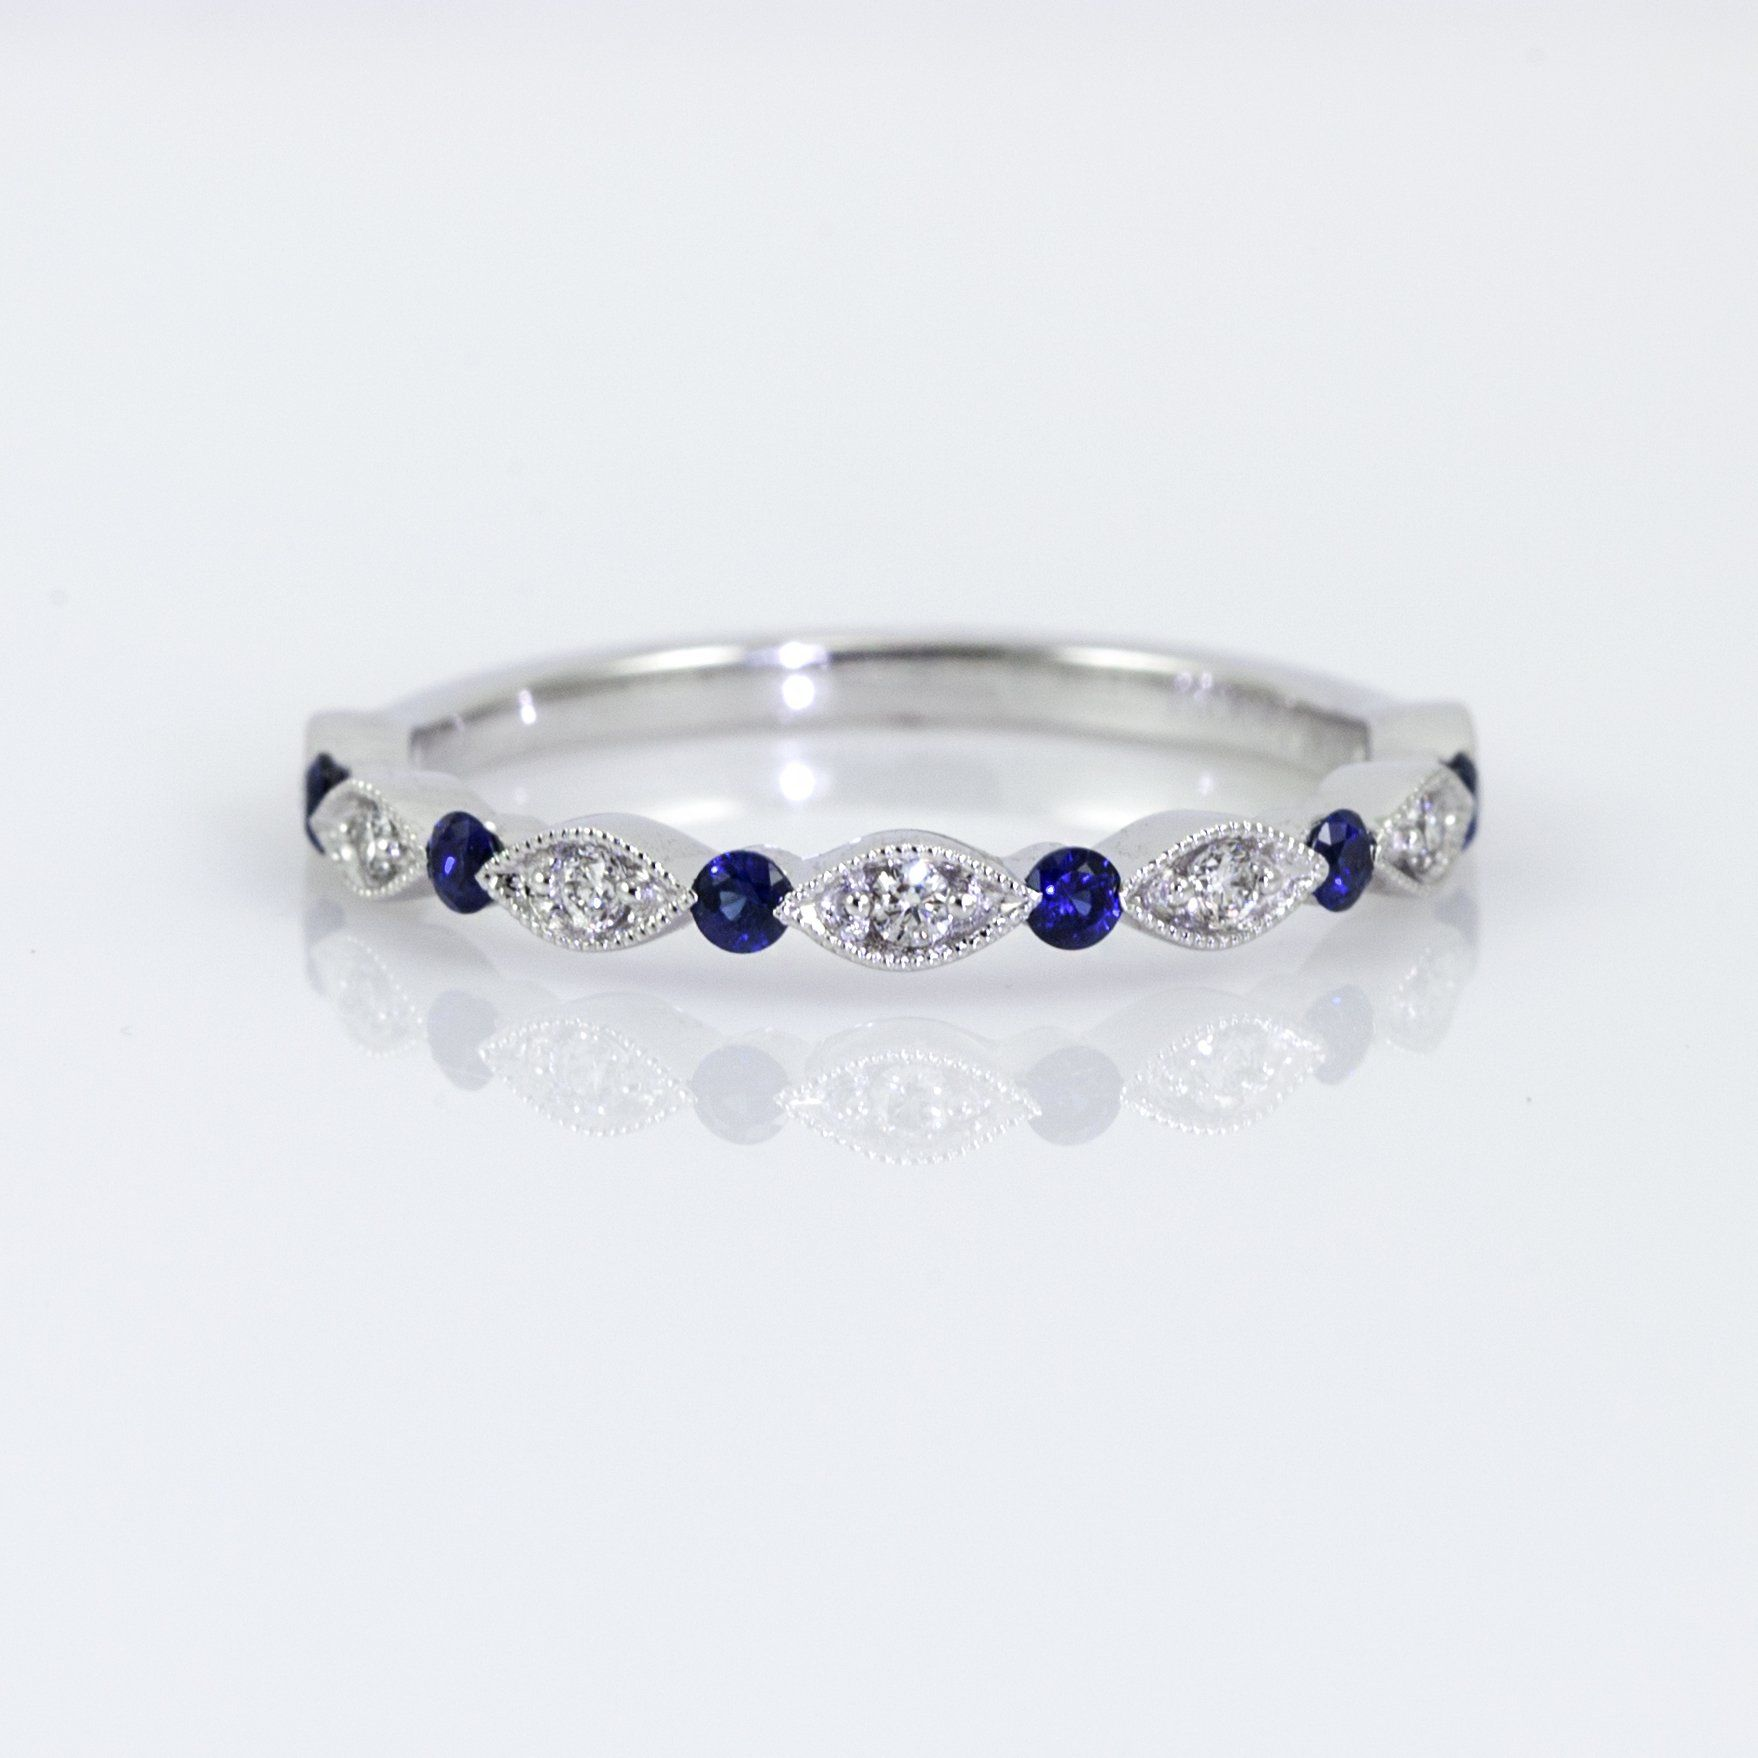 10936e224 14K white gold milgrain detail diamond and sapphire wedding band containing  7 round brilliant diamonds totaling 0.08ct (GH/SI1-2) and 6 sapphires  totaling ...